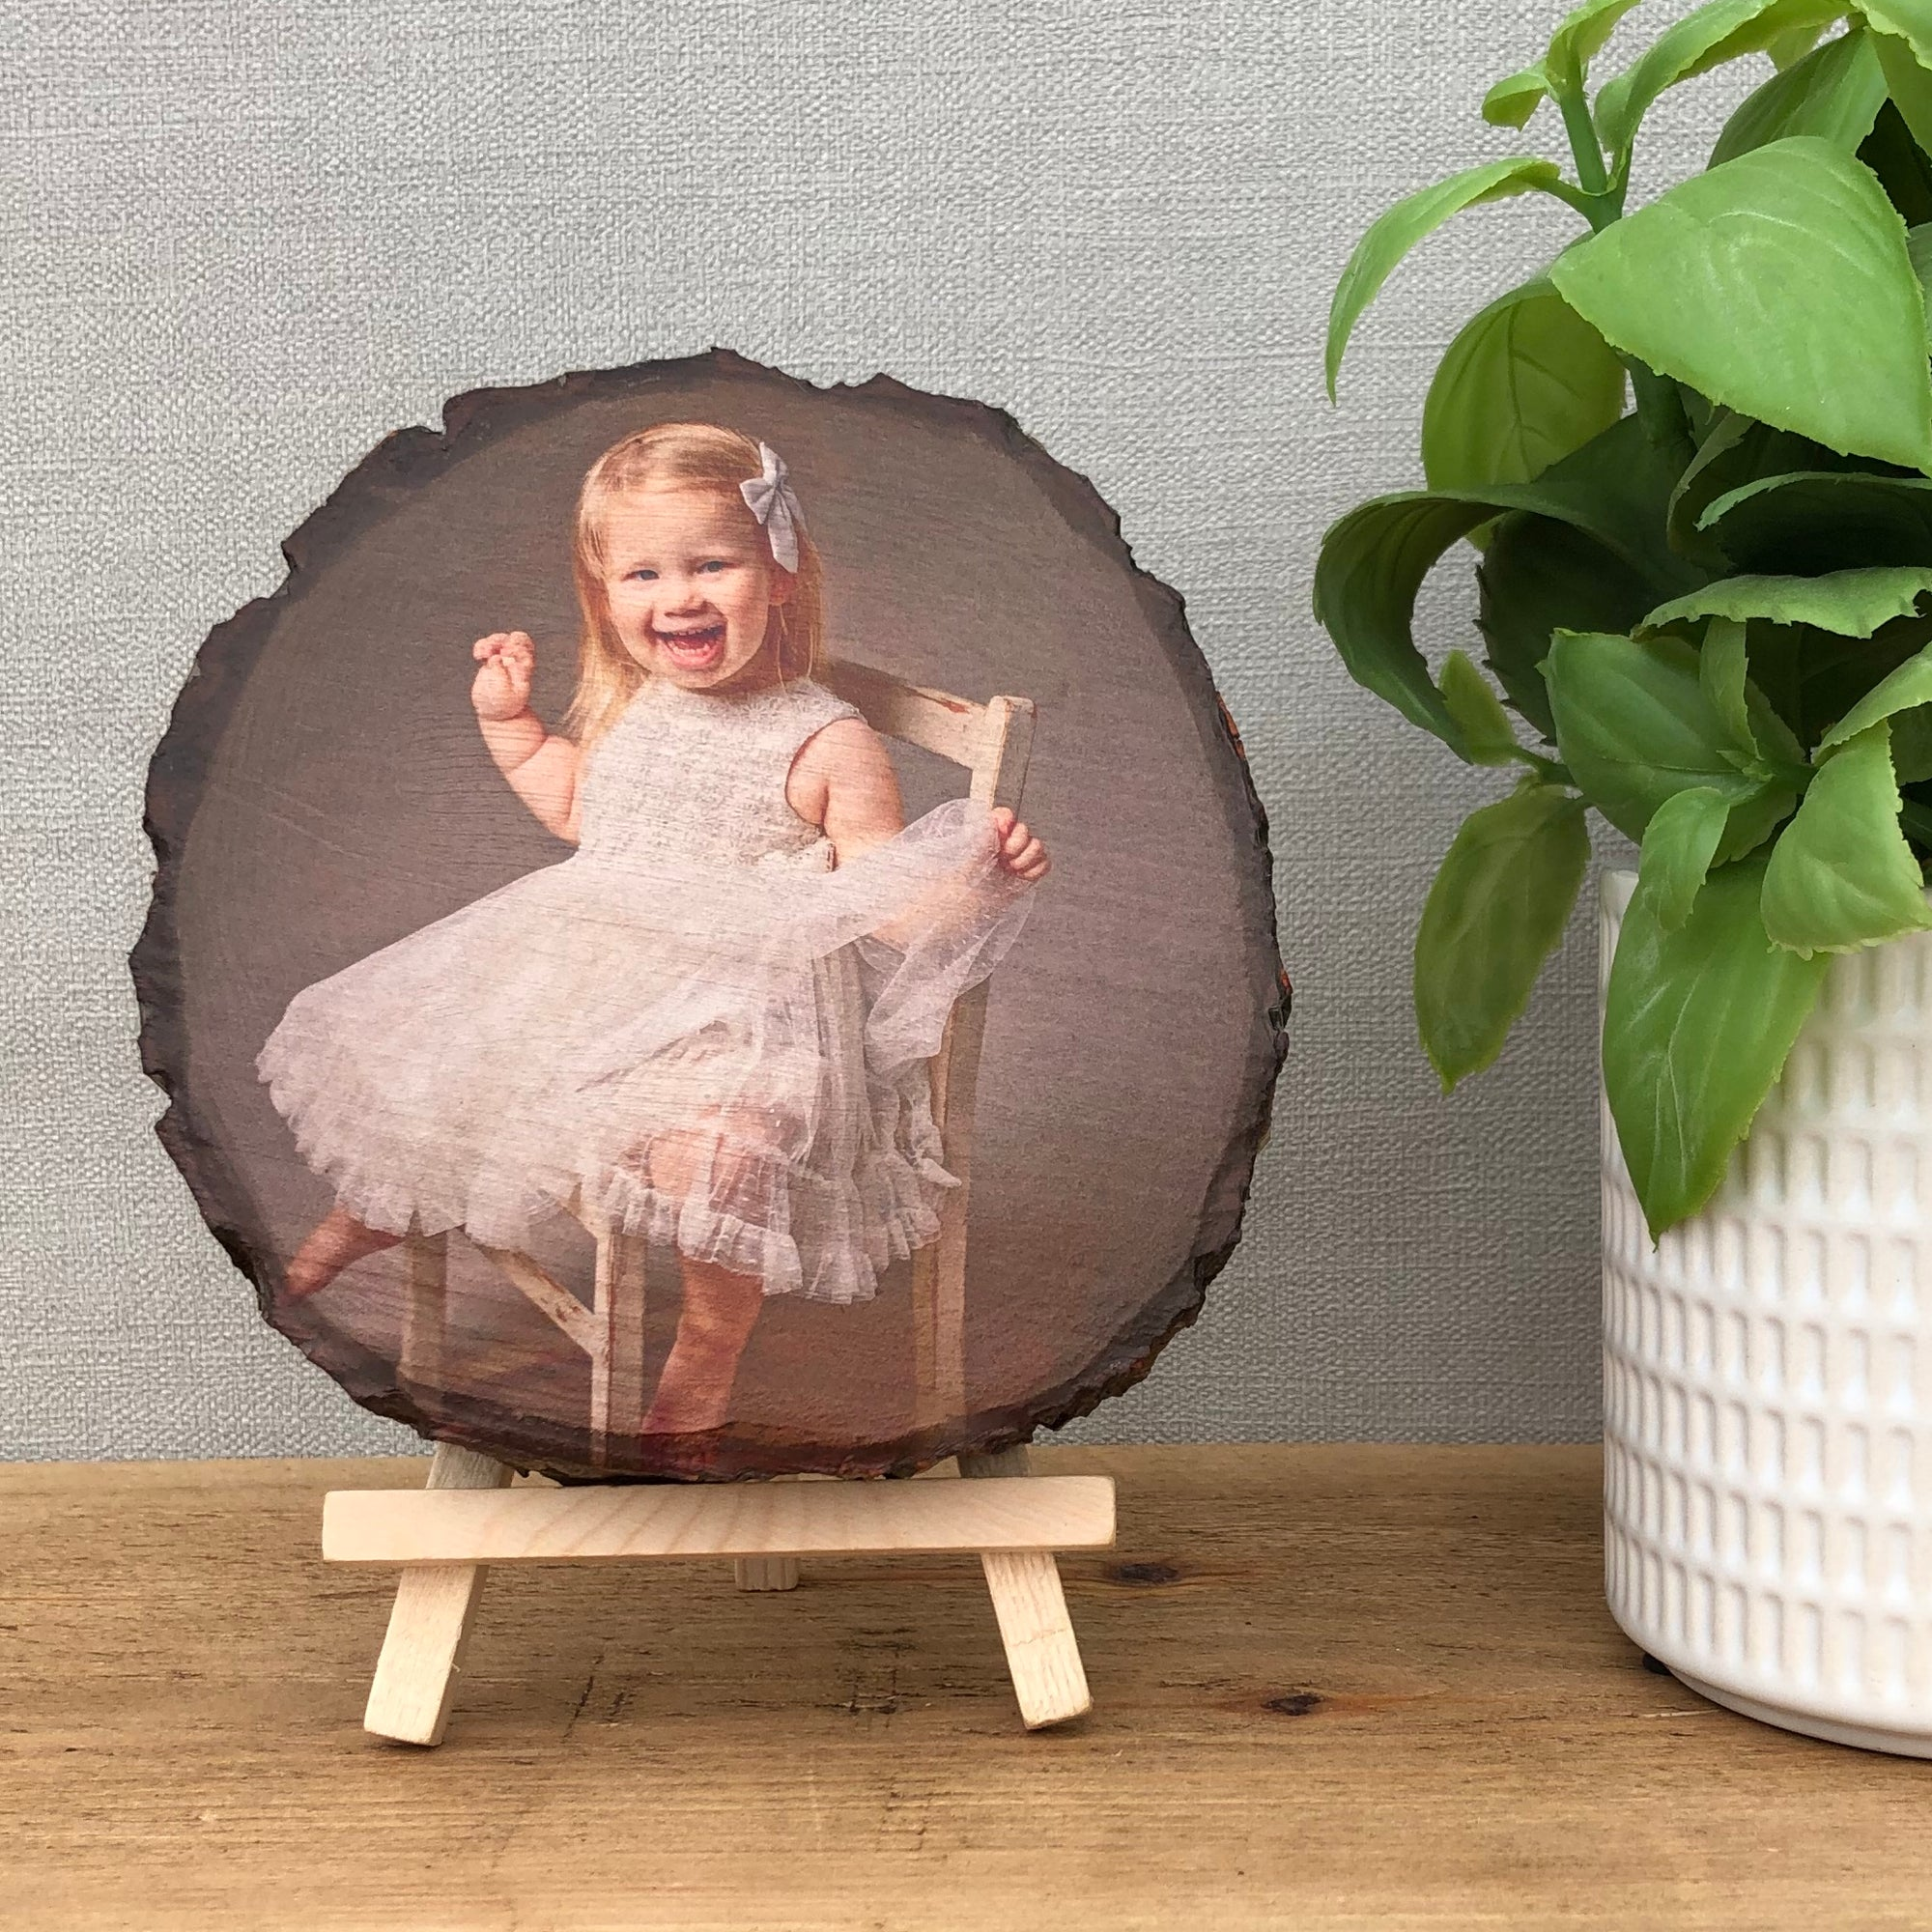 A wood slice photo plaque showing a young child sat on a chair.